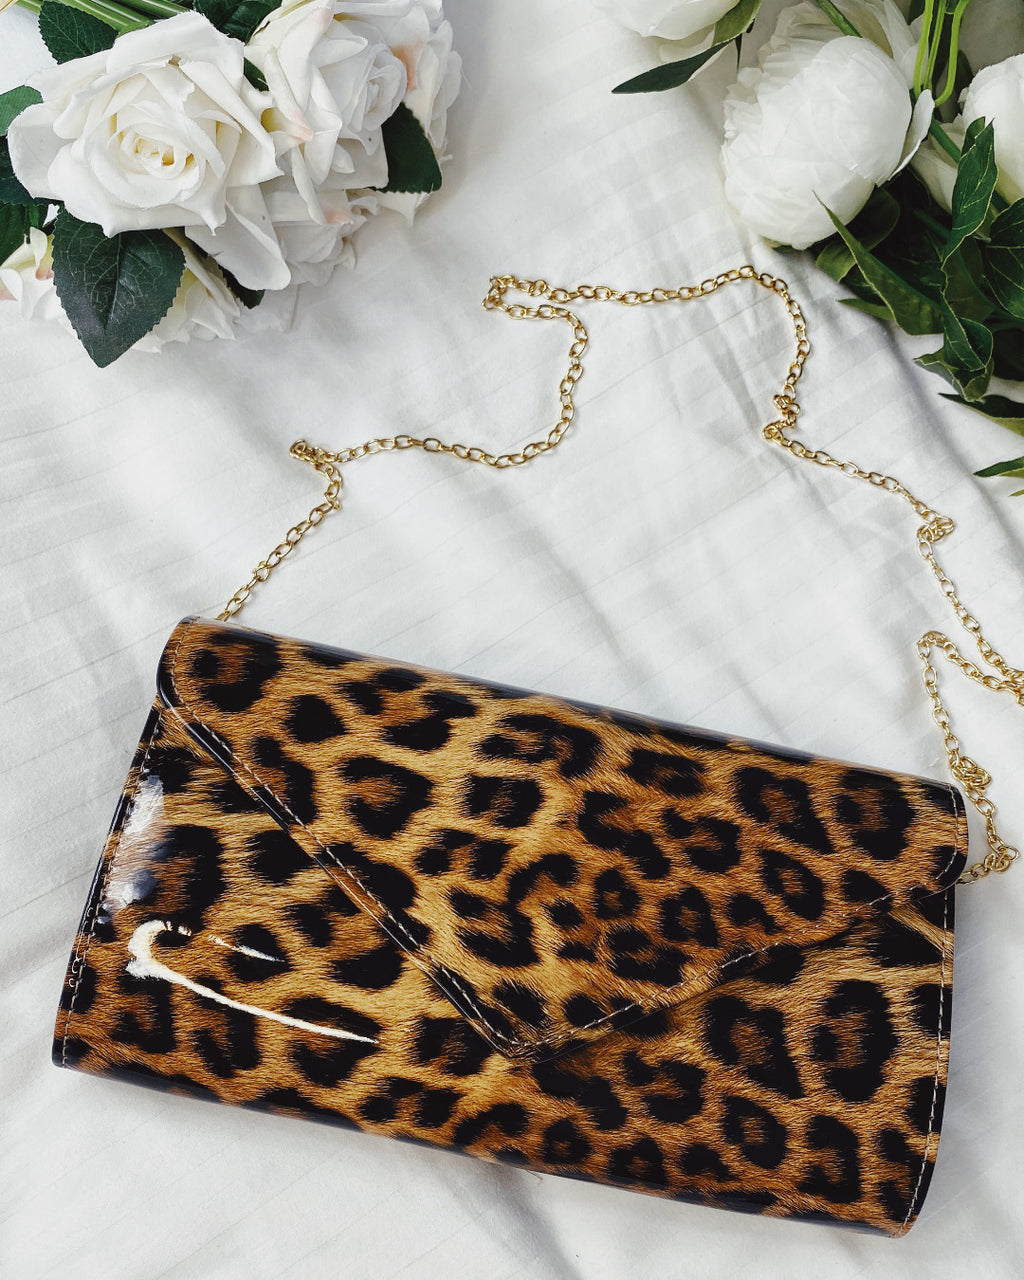 Animal Love Leopard Print Clutch